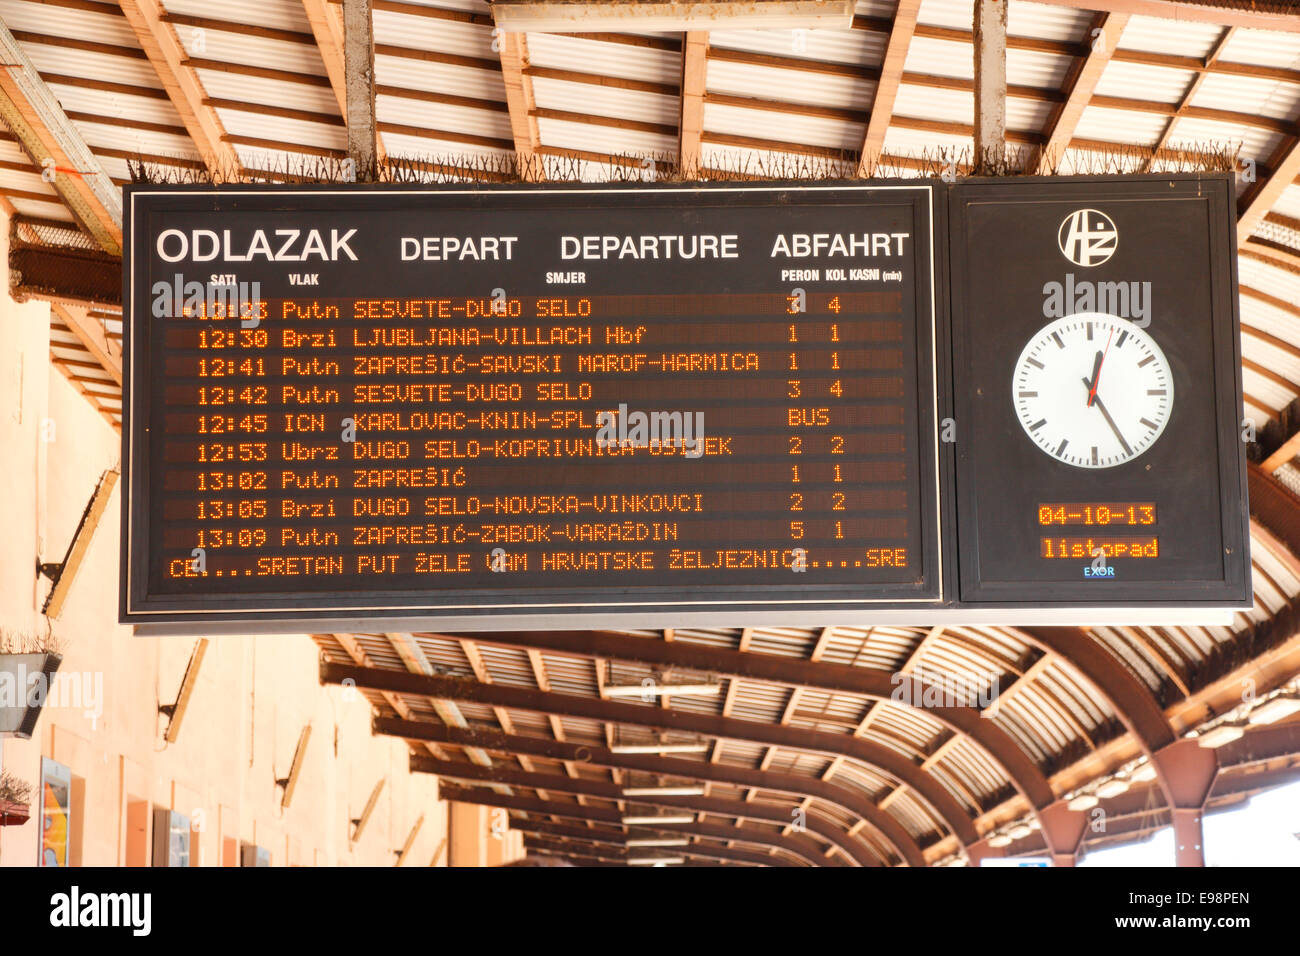 Zagreb train station - Arrival and Departure Board - Stock Image